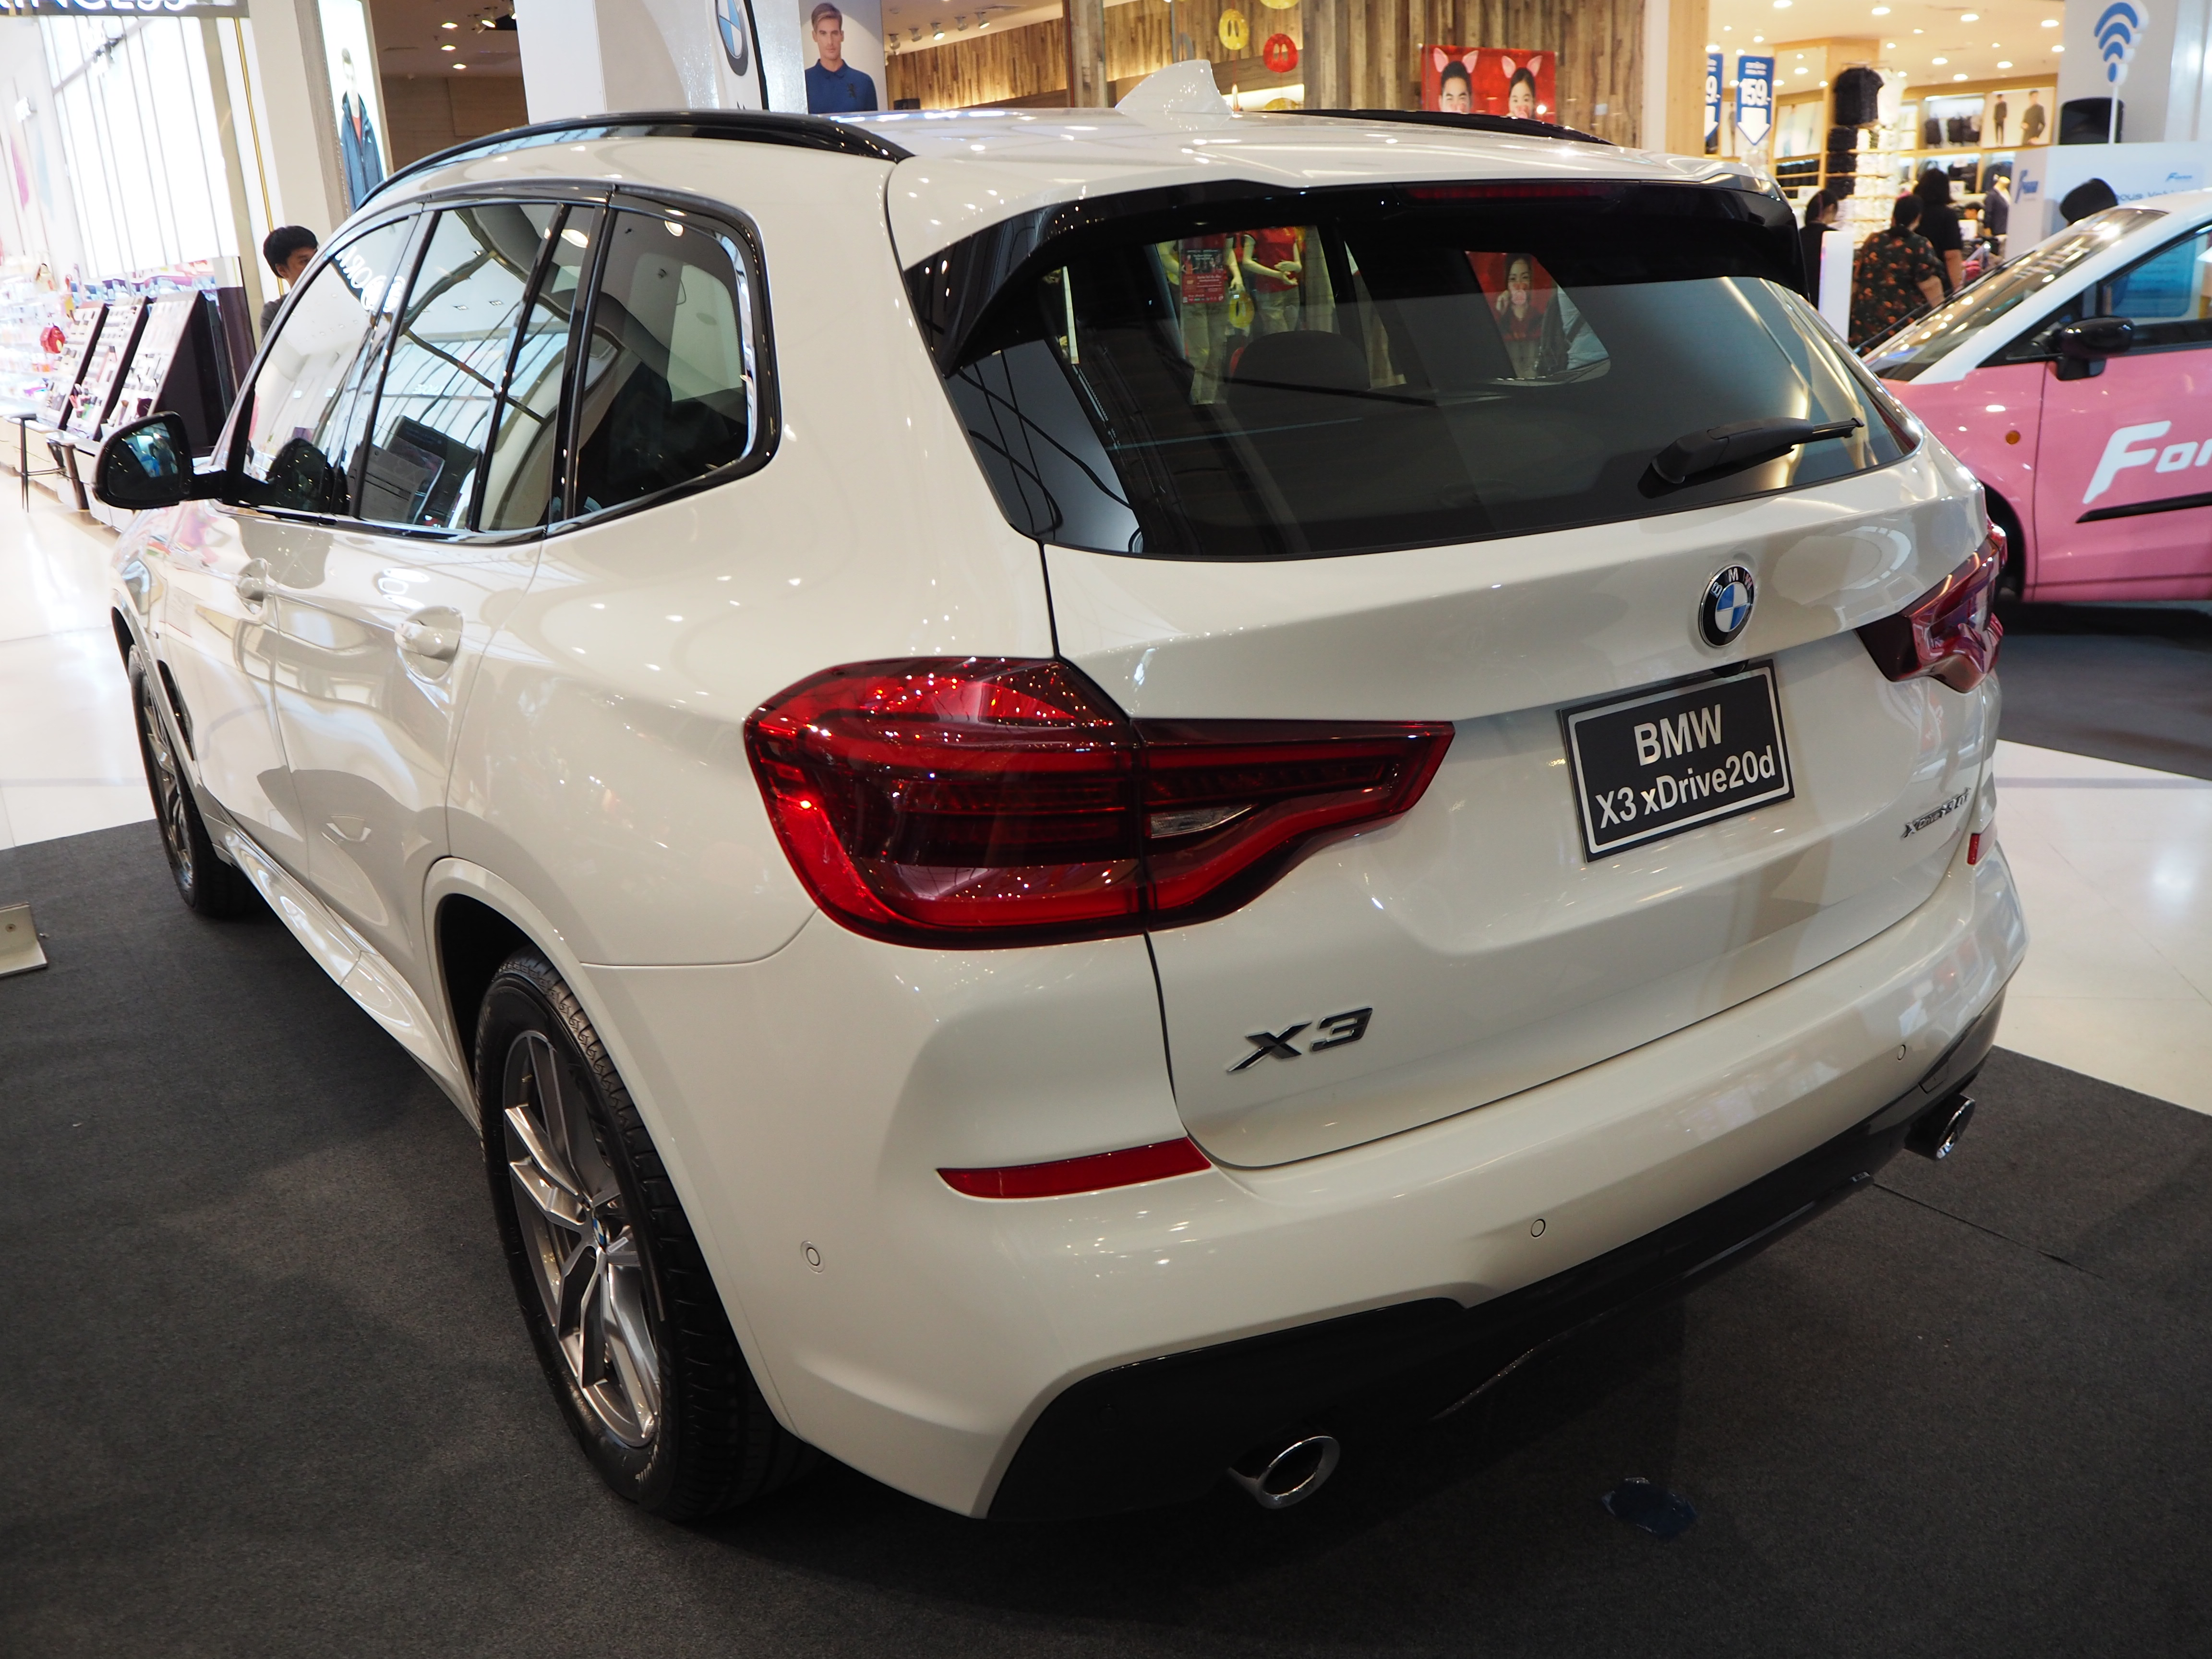 File 2018 Bmw X3 Xdrive 20d M Sport Rear Jpg Wikimedia Commons